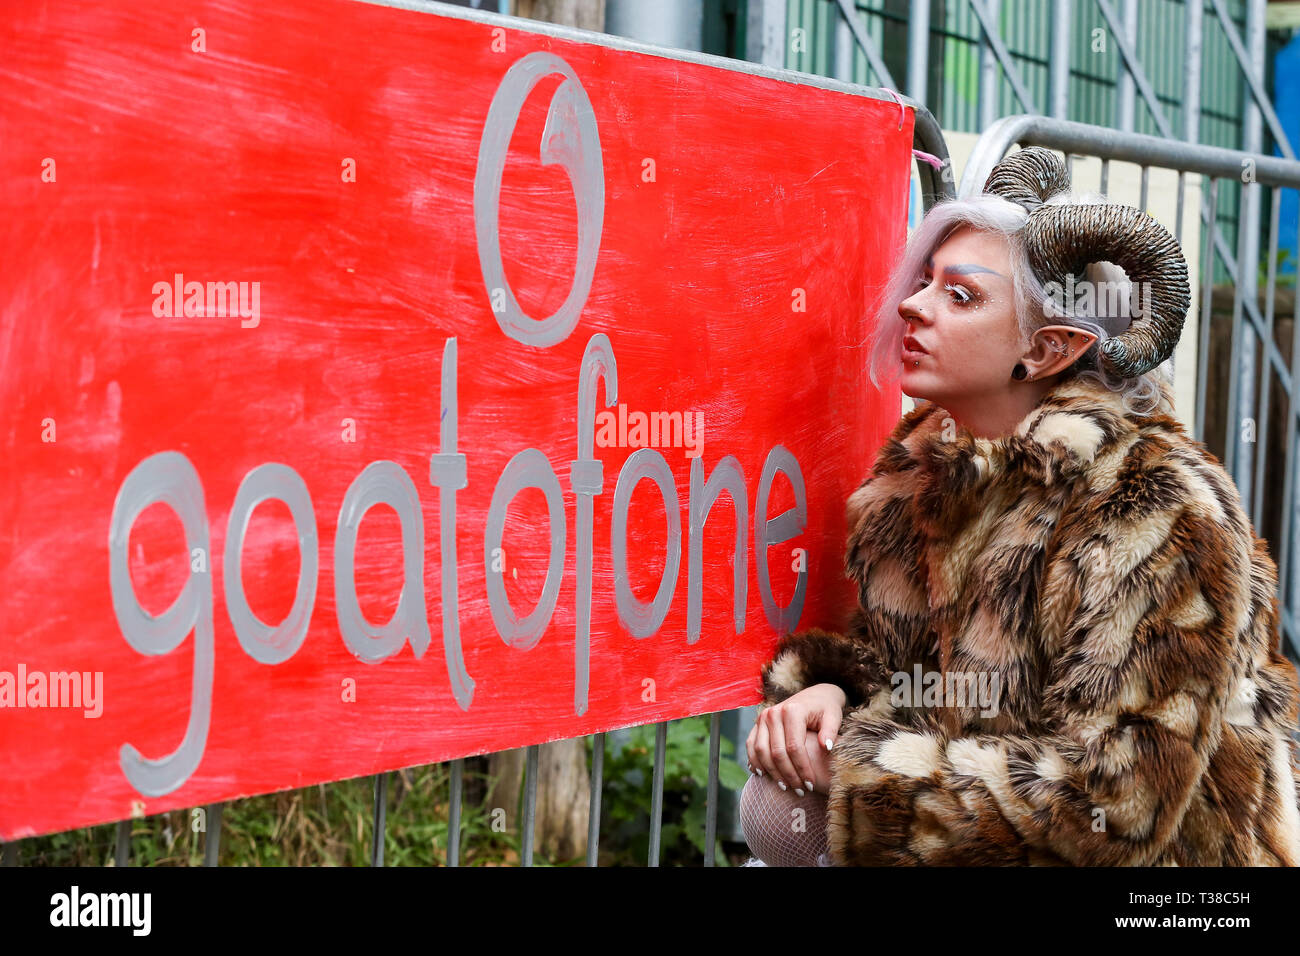 London, UK, UK. 7th Apr, 2019. A woman wearing goat horns is seen standing next to a banner before the Oxford vs Cambridge Goat Race in East London.Two pygmy goats compete during the 10th Oxford and Cambridge Goat Race at Spitalfields City Farm, Bethnal Green in East London. The annual fundraising event, which takes place at the same time as the Oxford and Cambridge boat race, where two goats, one named Hamish representing Oxford and the other Hugo representing Cambridge to be crowned King Billy. Credit: Dinendra Haria/SOPA Images/ZUMA Wire/Alamy Live News - Stock Image